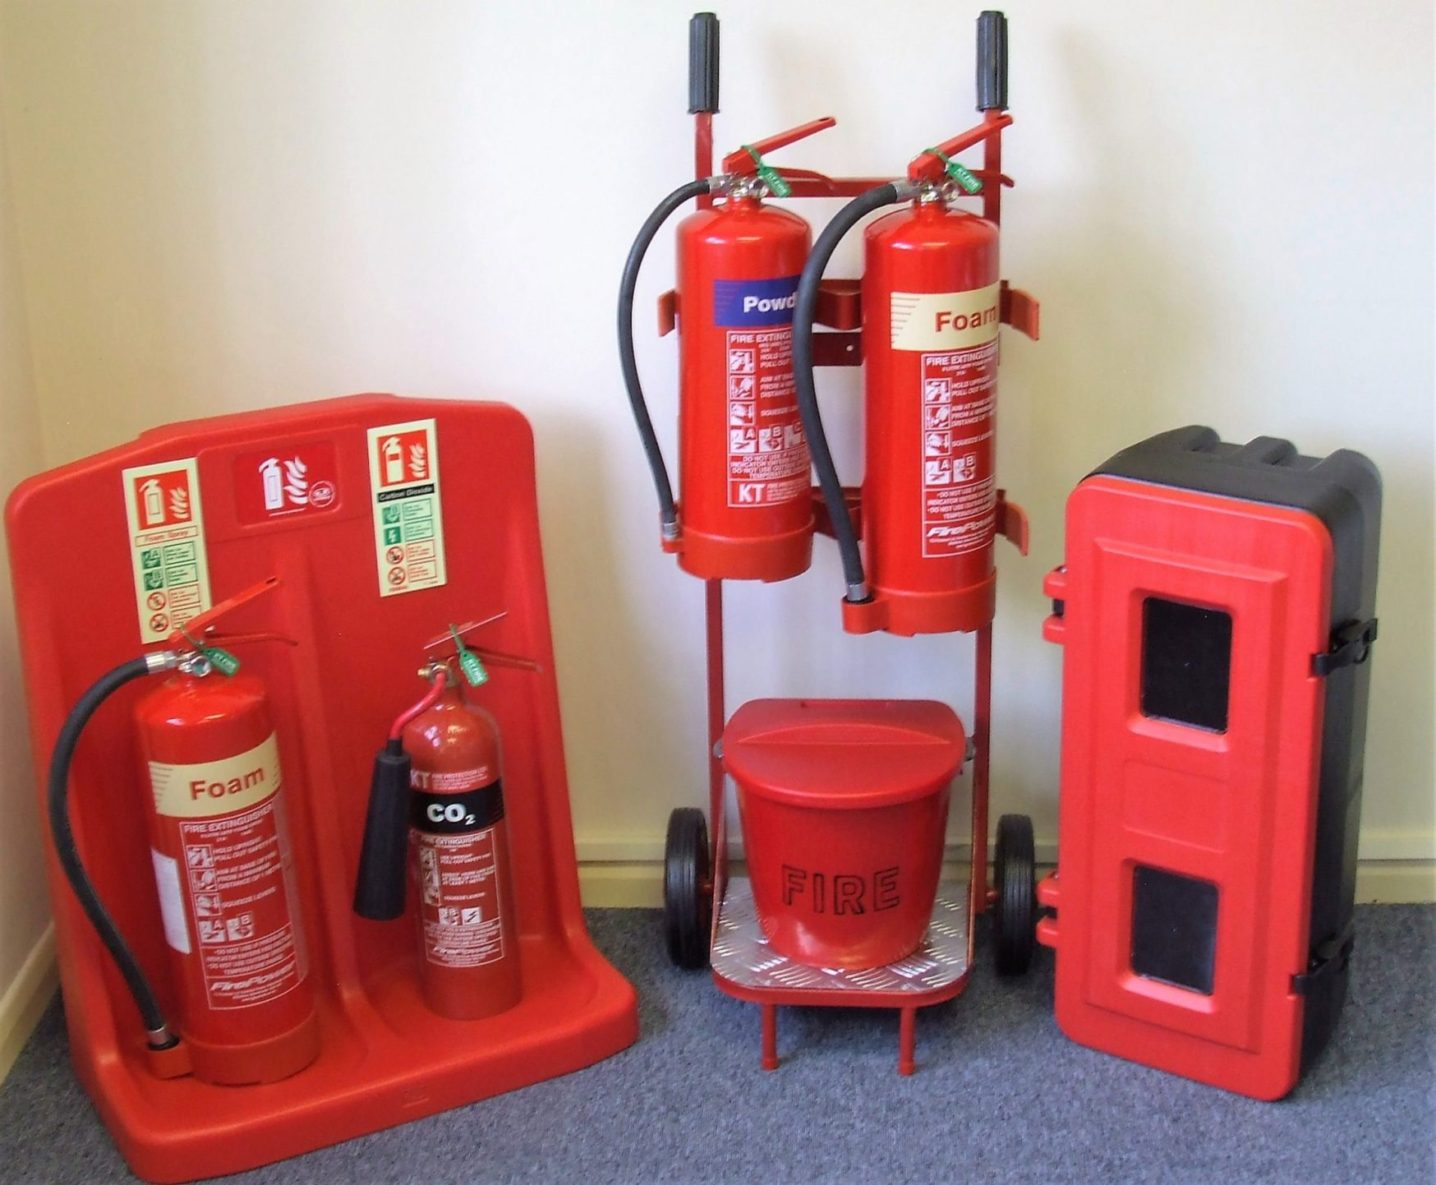 KT Fire Protection Fire Fighting Stands